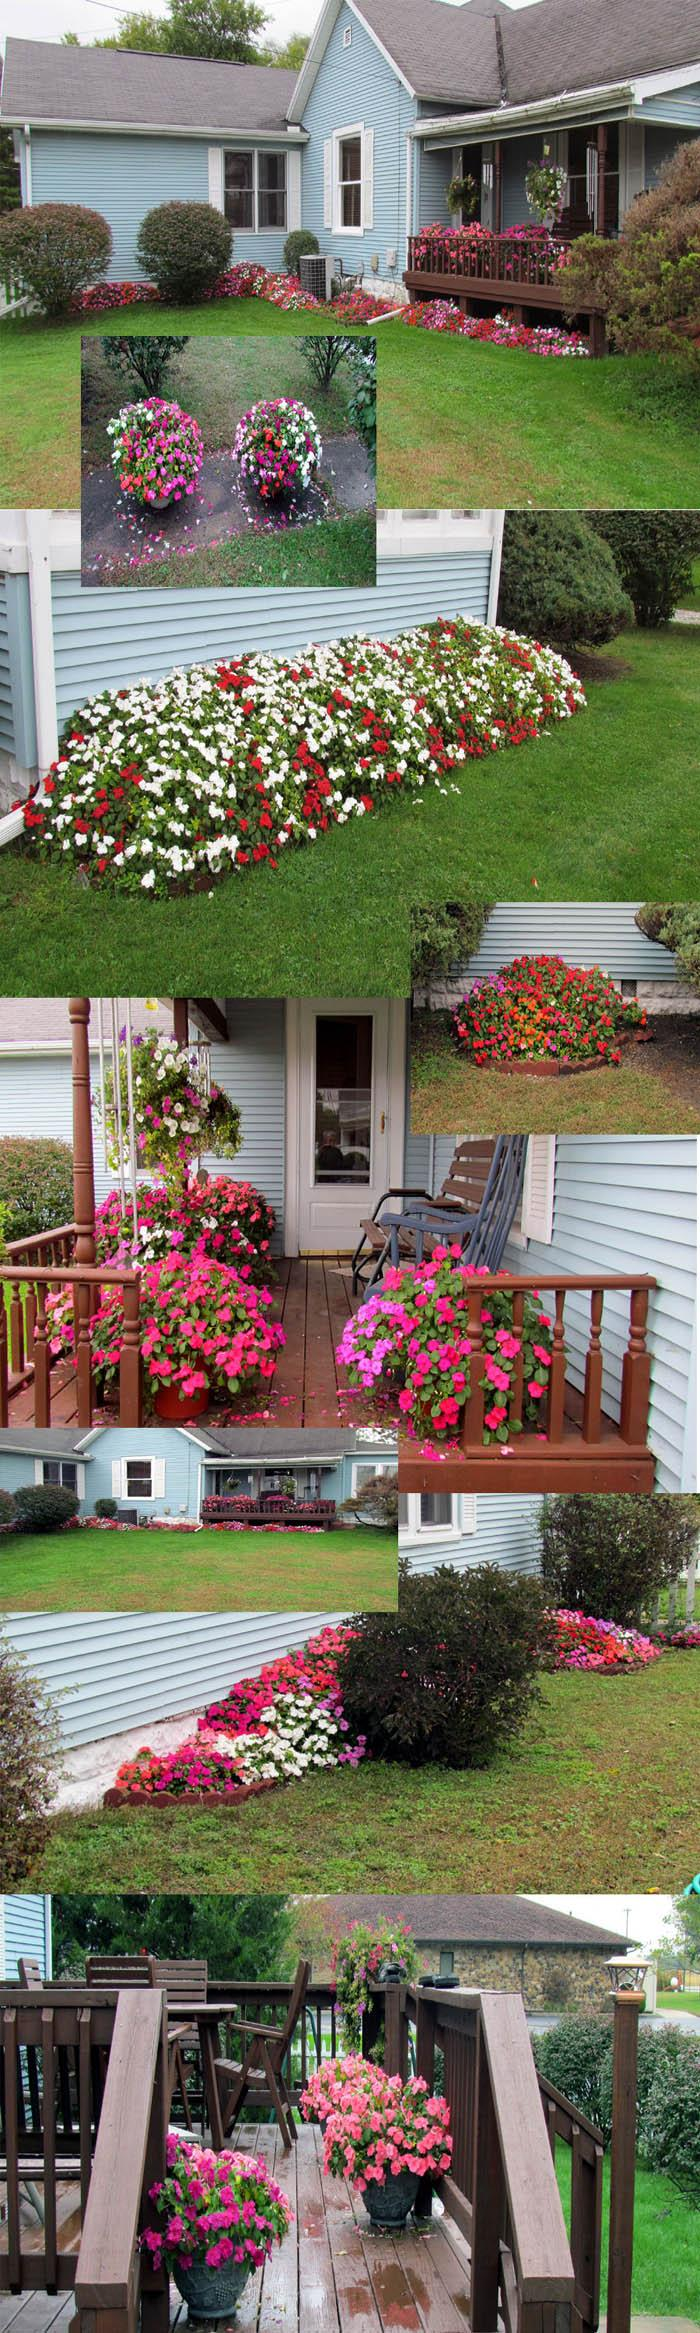 Impatiens did well this year